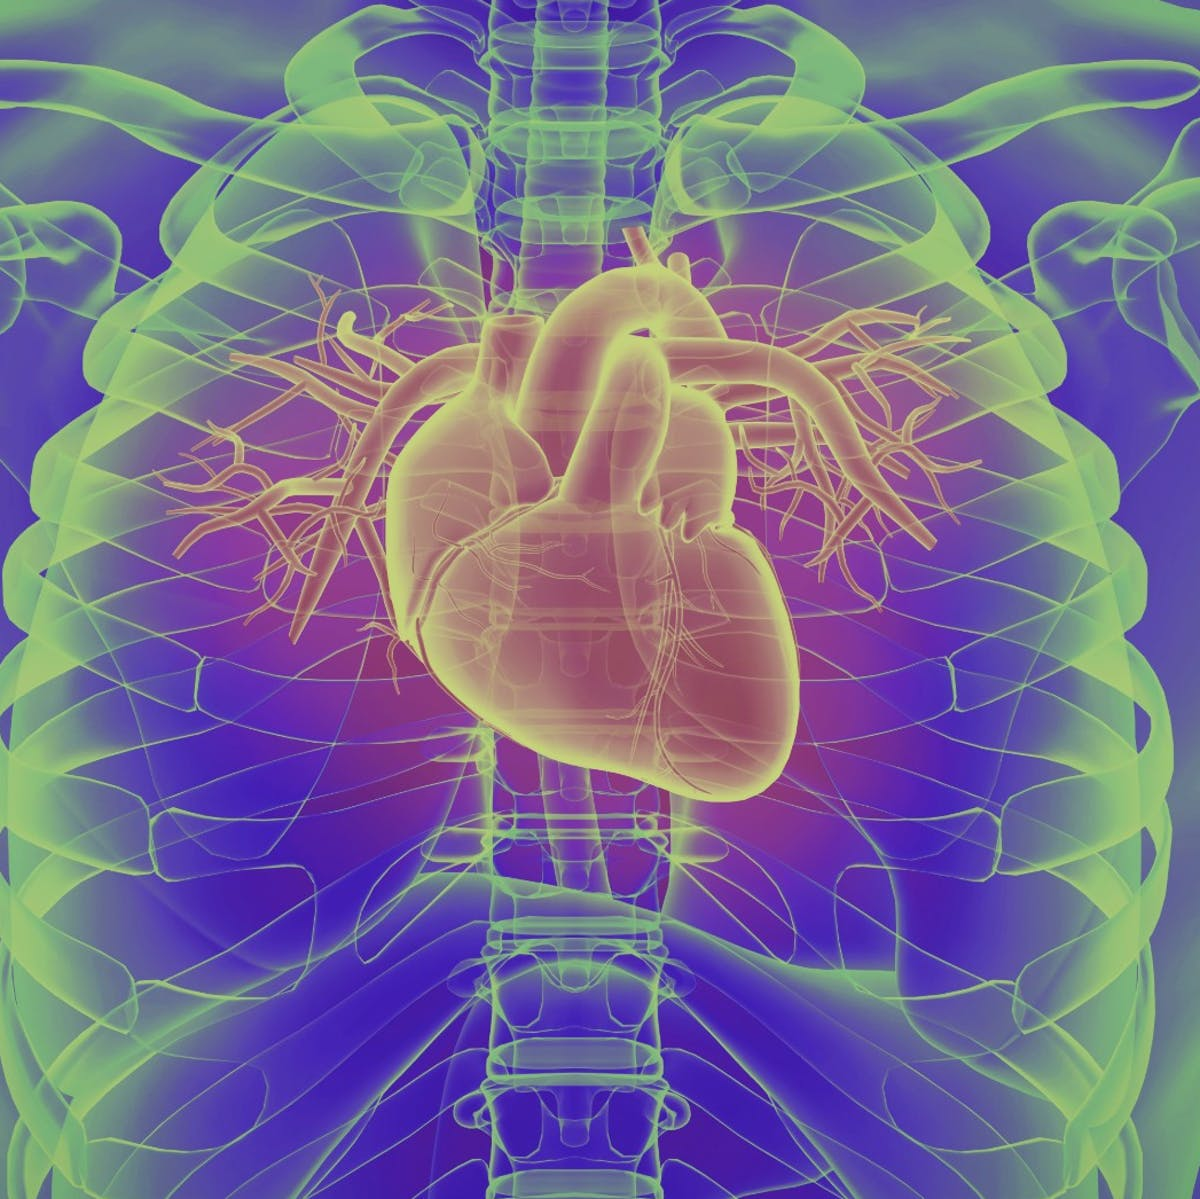 Frequent marijuana use could literally change a person's heart